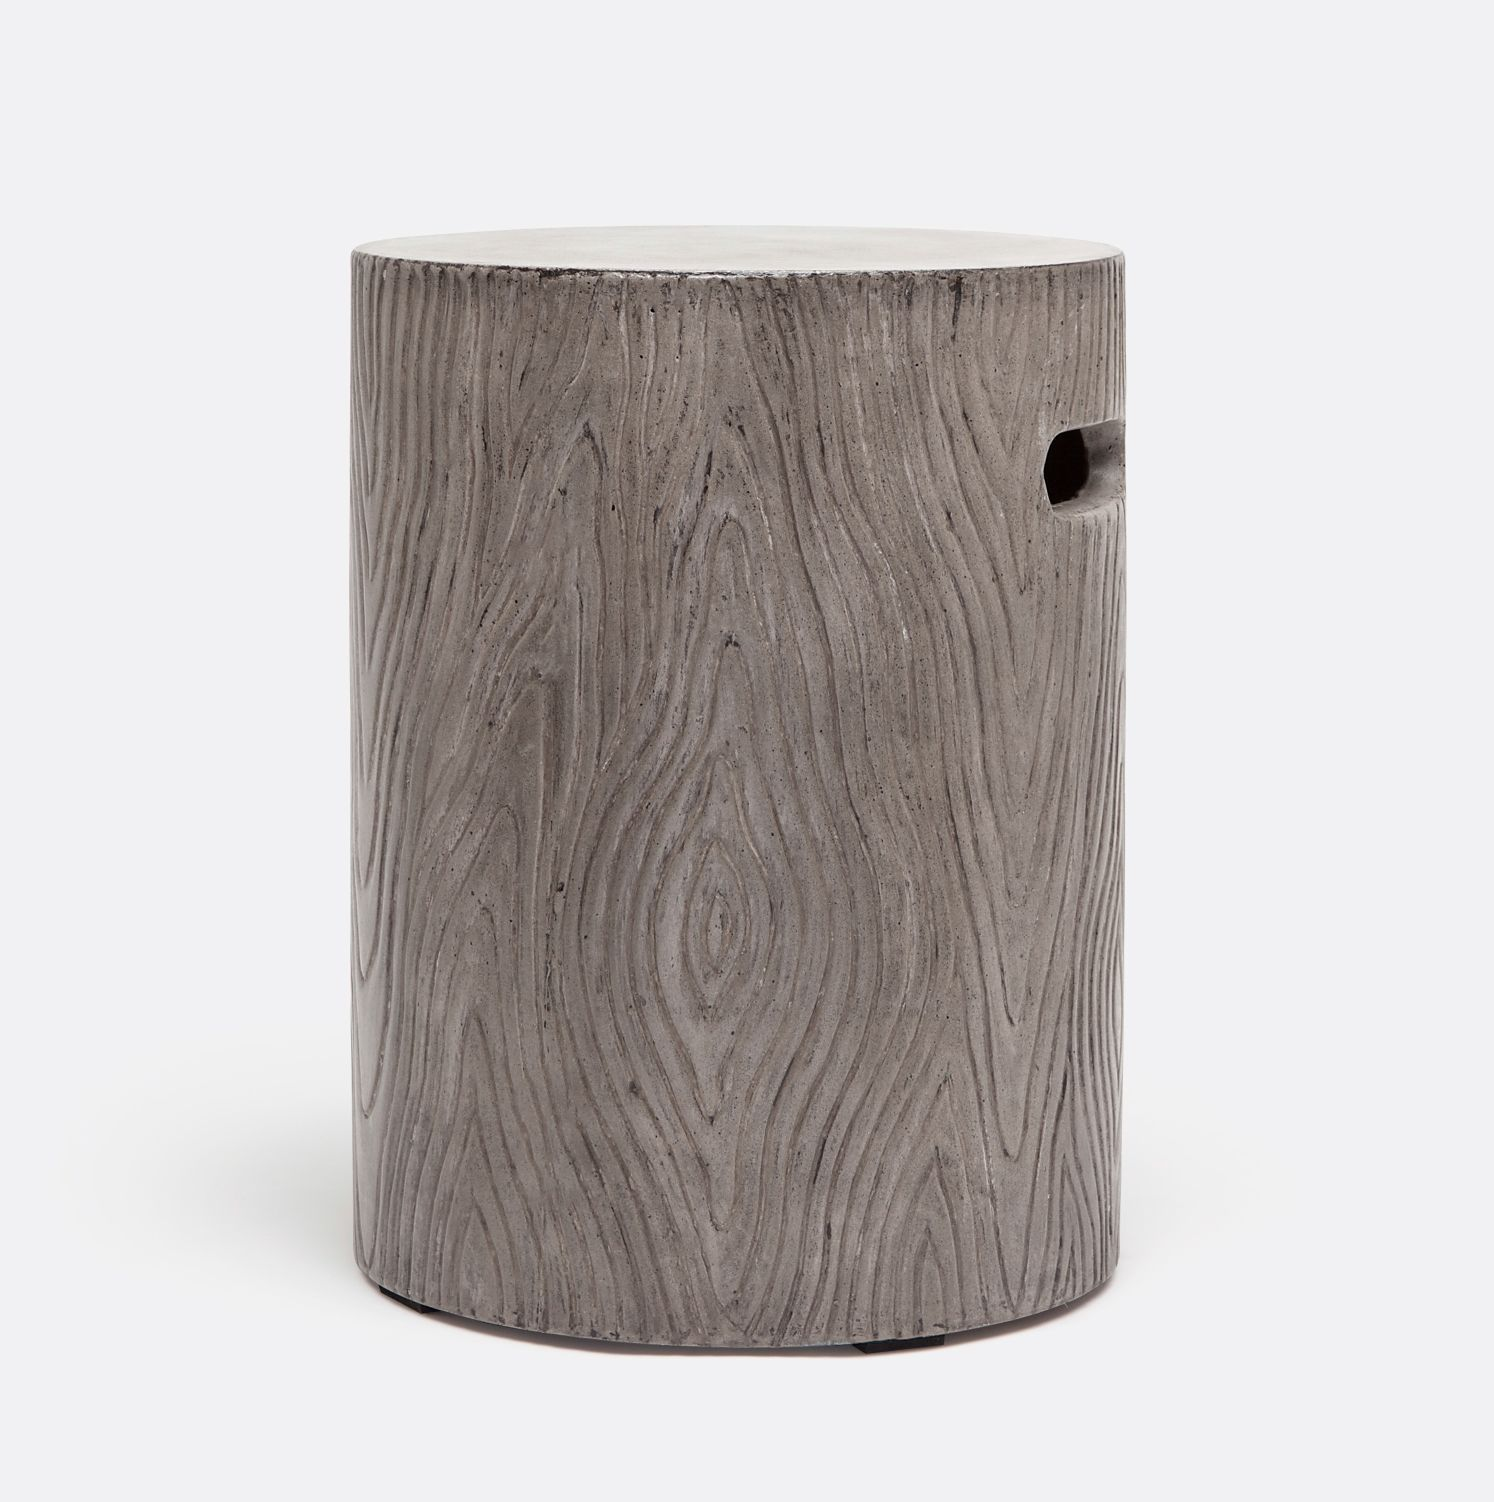 Blanche Concrete Faux Bois Round Stool Suitable For Outdoor Use Finishes:  Black Concrete, Dark